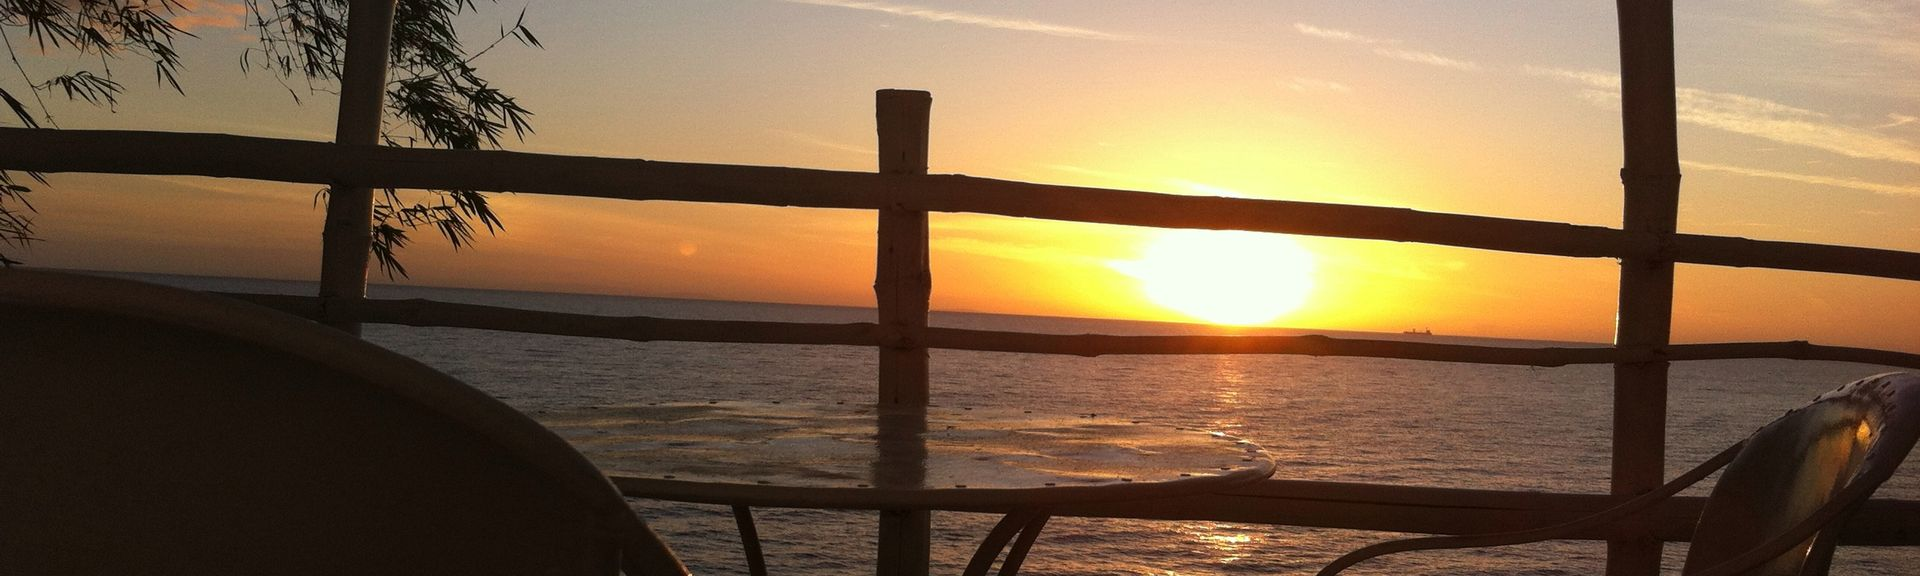 Negros Occidental, Philippines